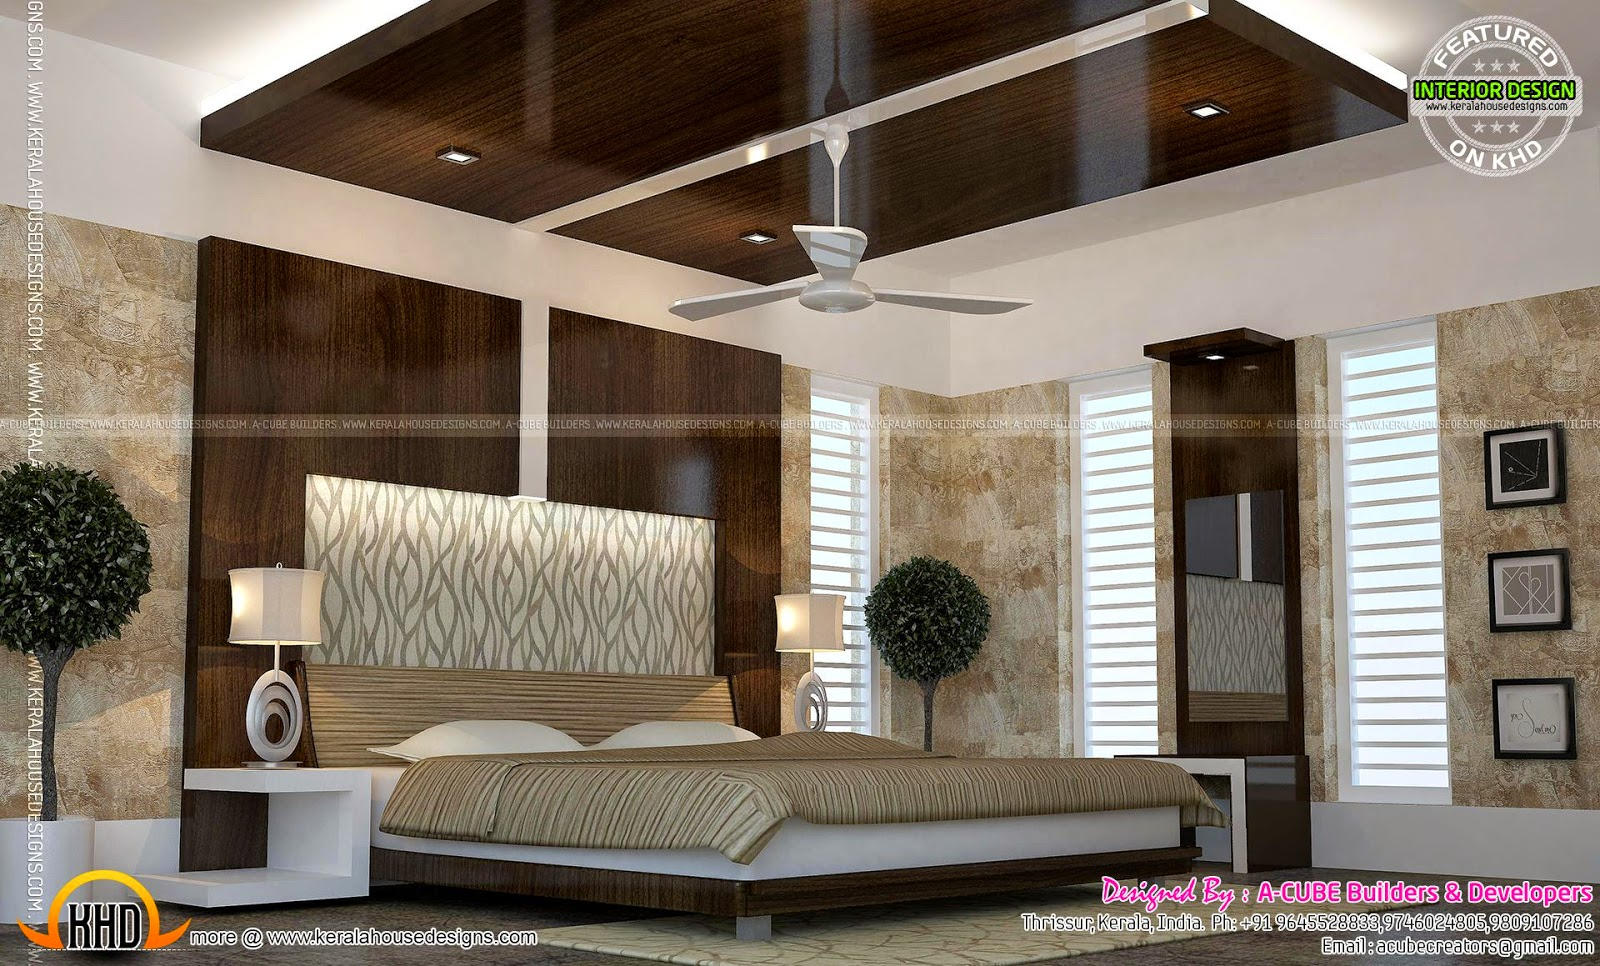 Kerala interior design ideas kerala home design and for House interior design bedroom